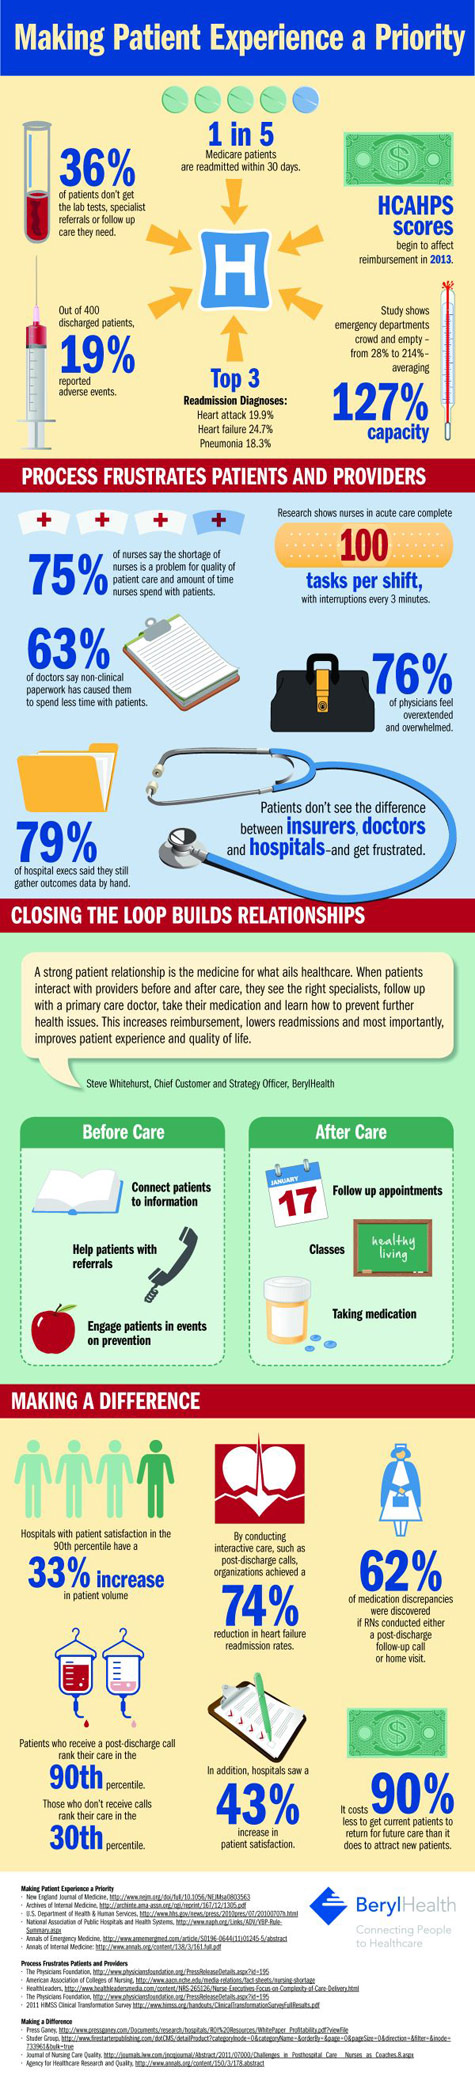 making patient experience a priority infographic